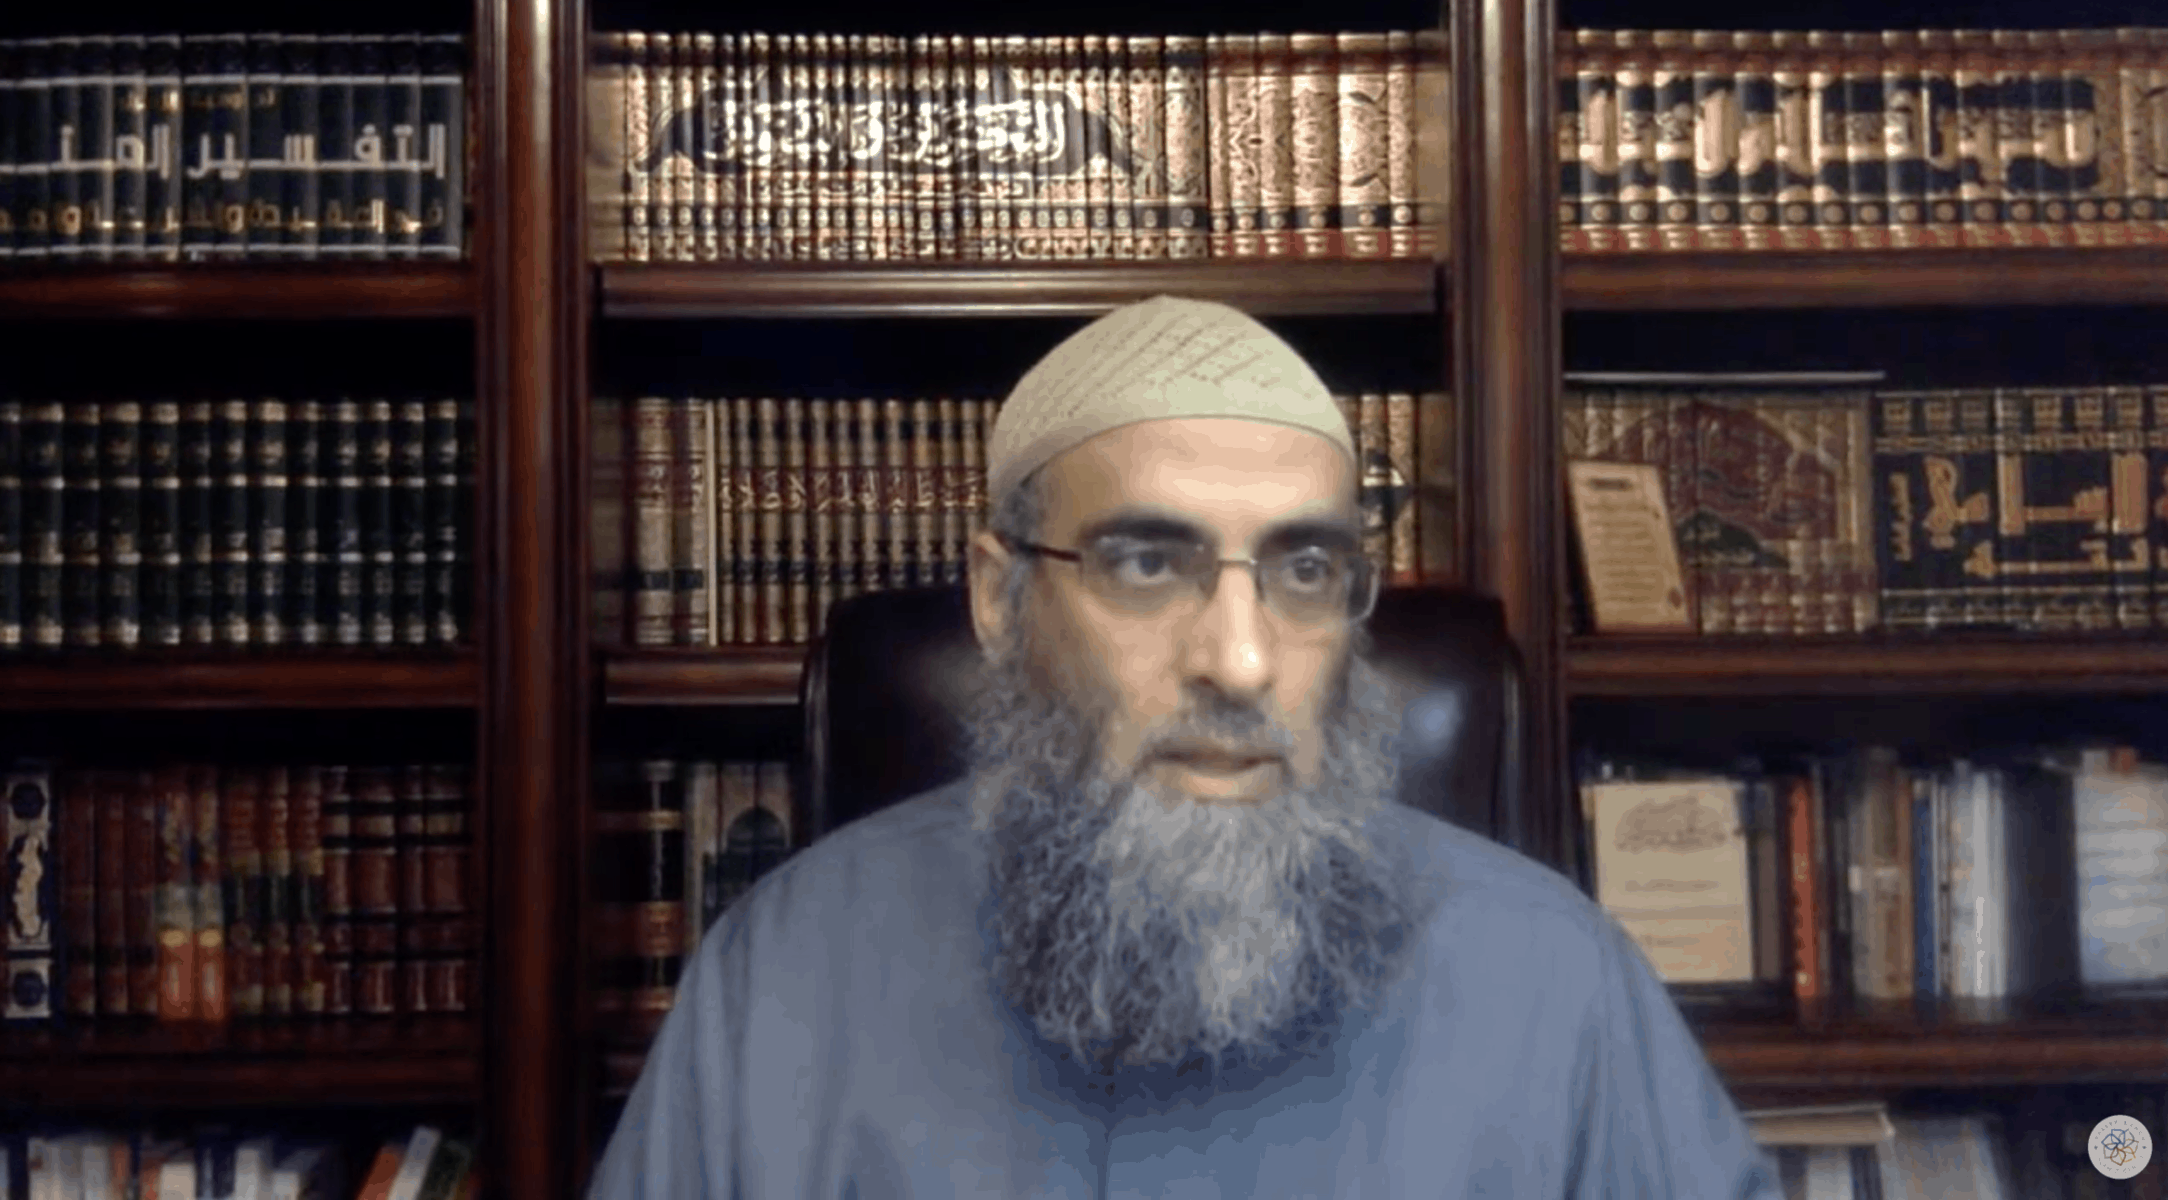 Yaser Birjas – The virtue of Qiyam and Tahajjud